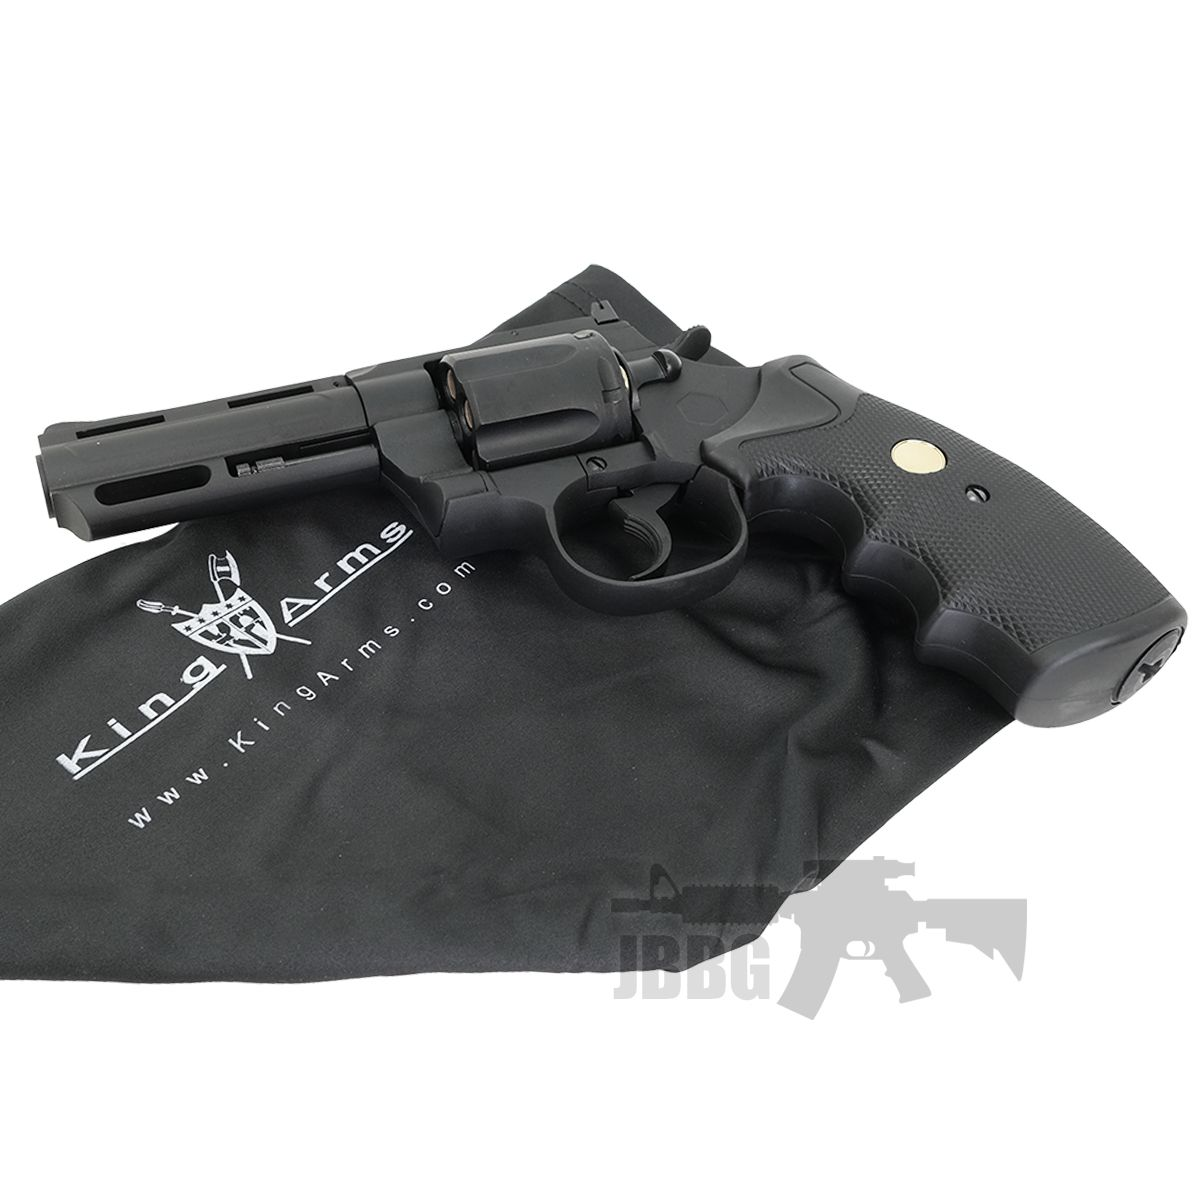 King Arms Co2 Airsoft Revolver 1